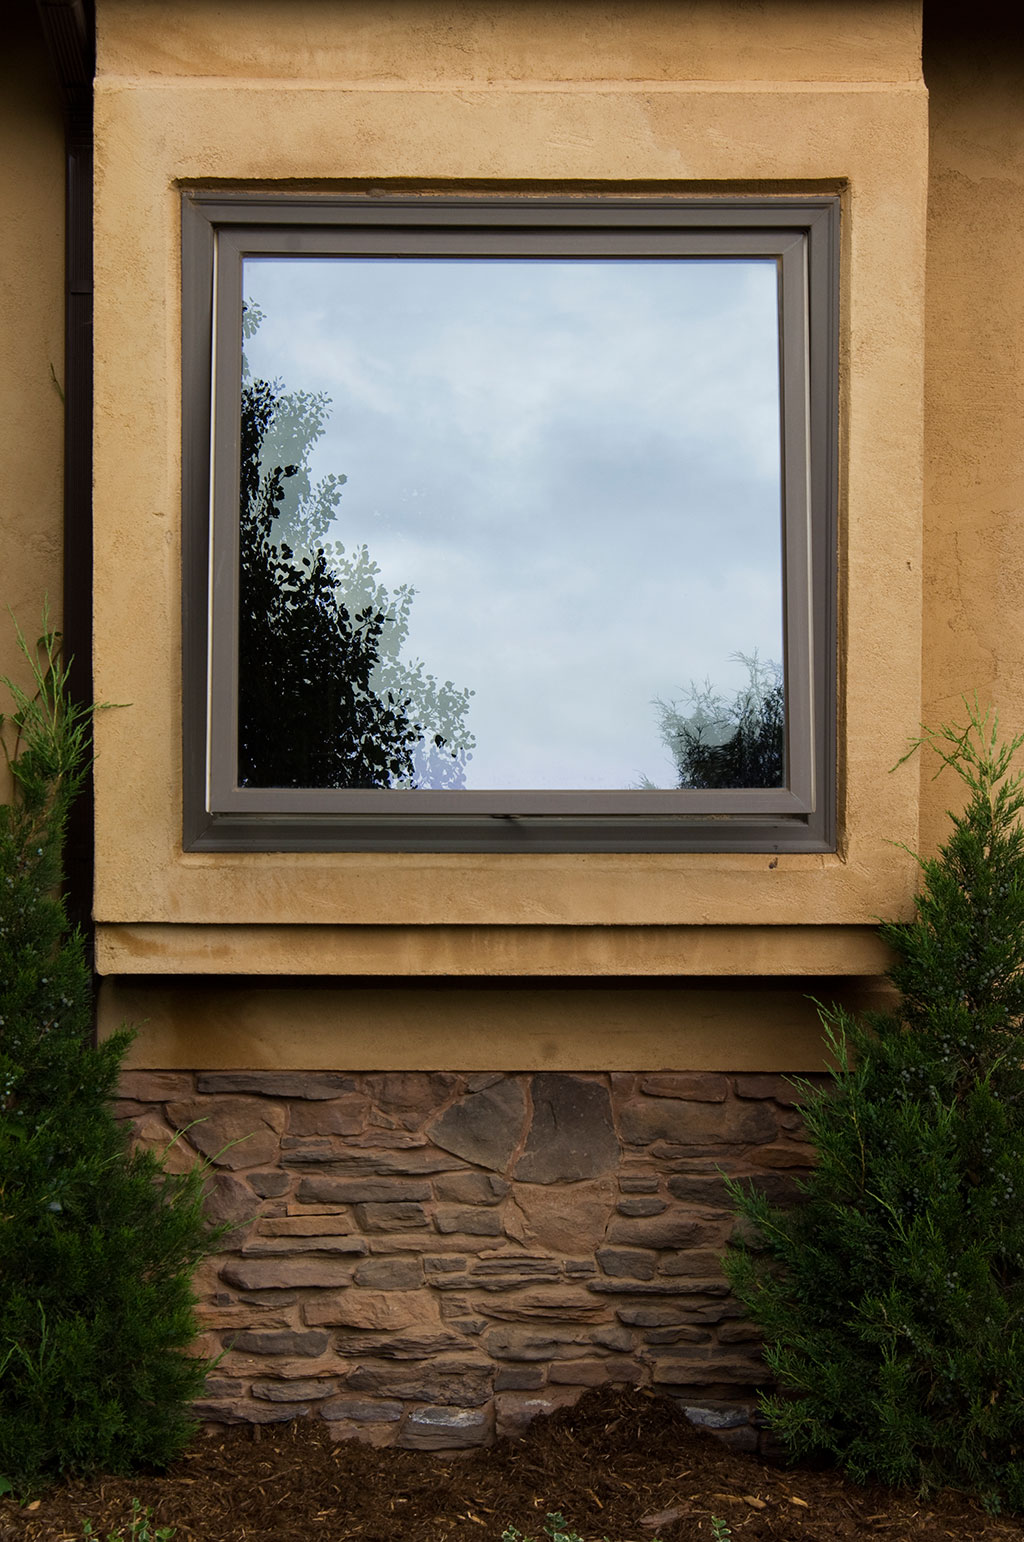 Awning Windows | Renewal by Andersen of Alaska | Anchorage